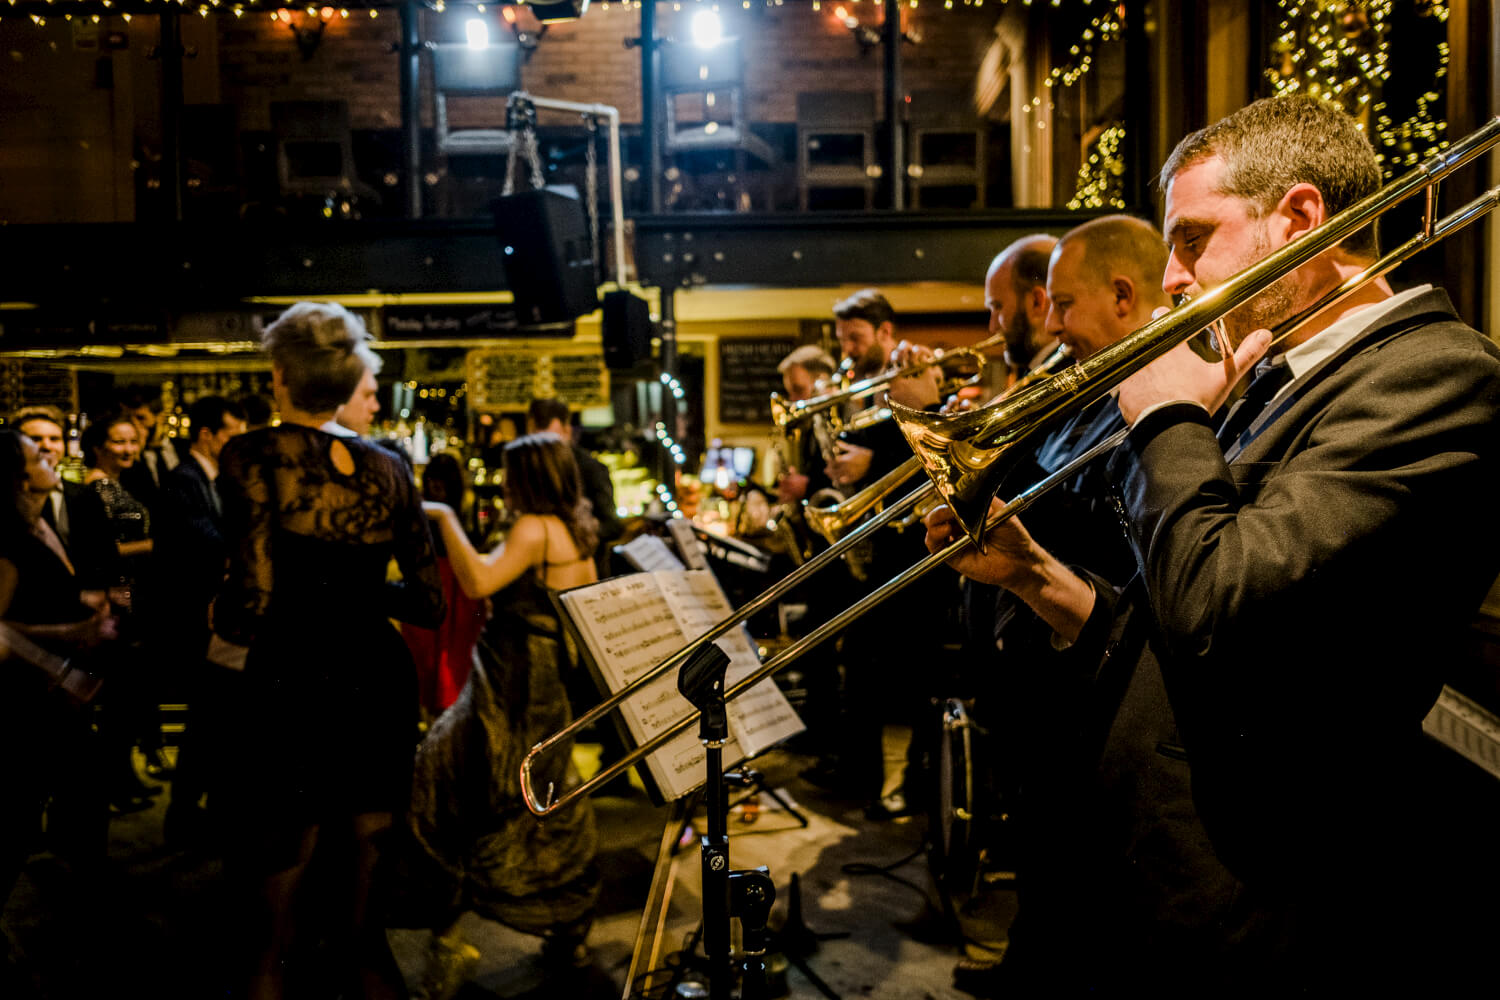 brassjunkies-brass-band-playing-on-stage-in-london-wedding.jpg